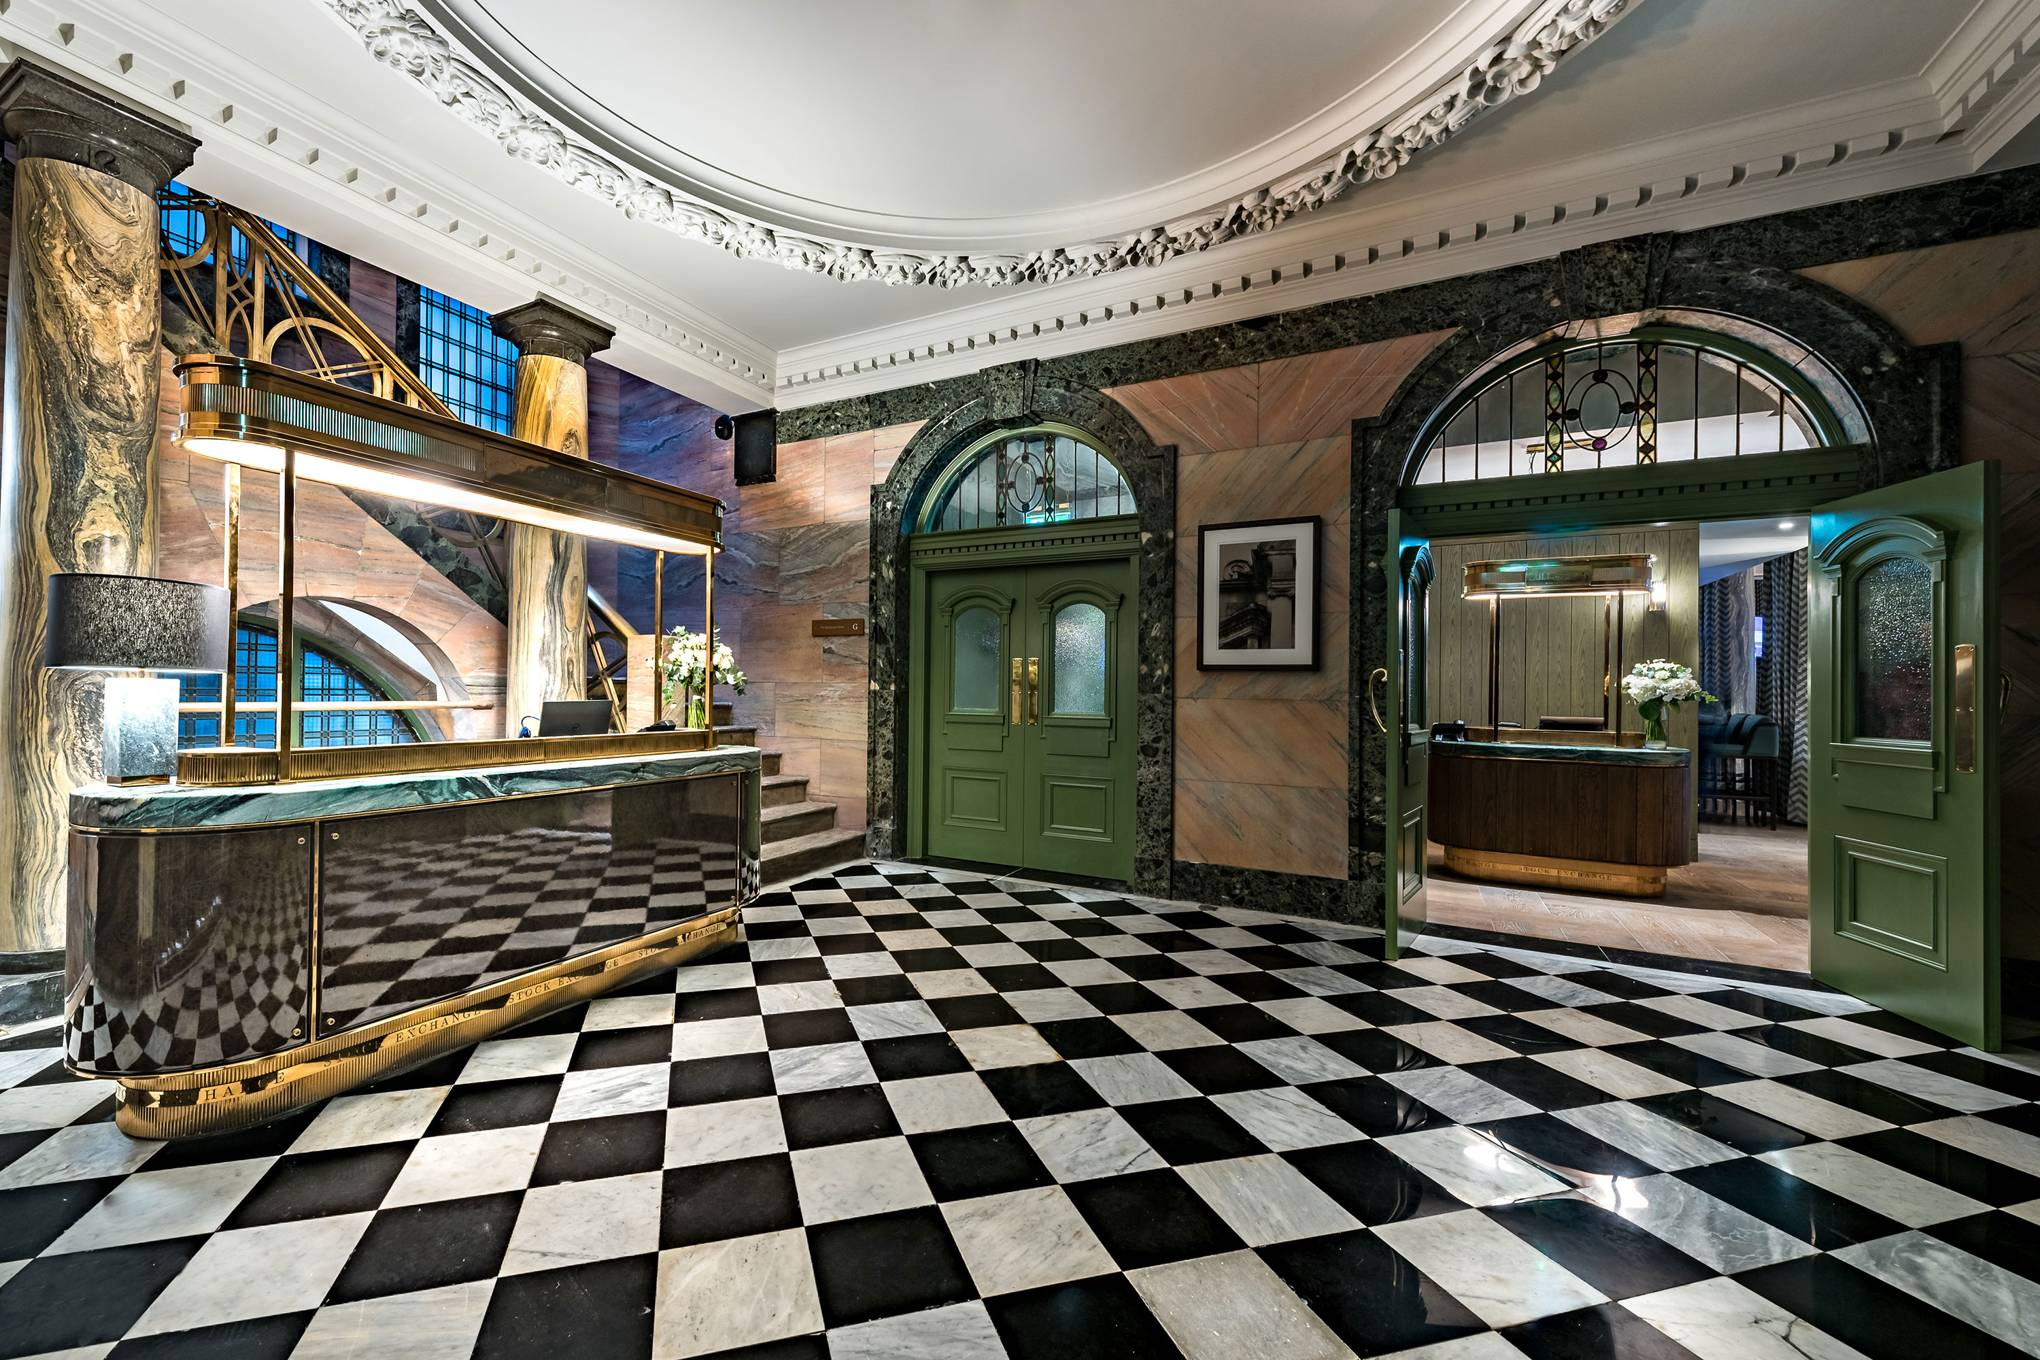 Welcome to Manchester's most exciting new hotel